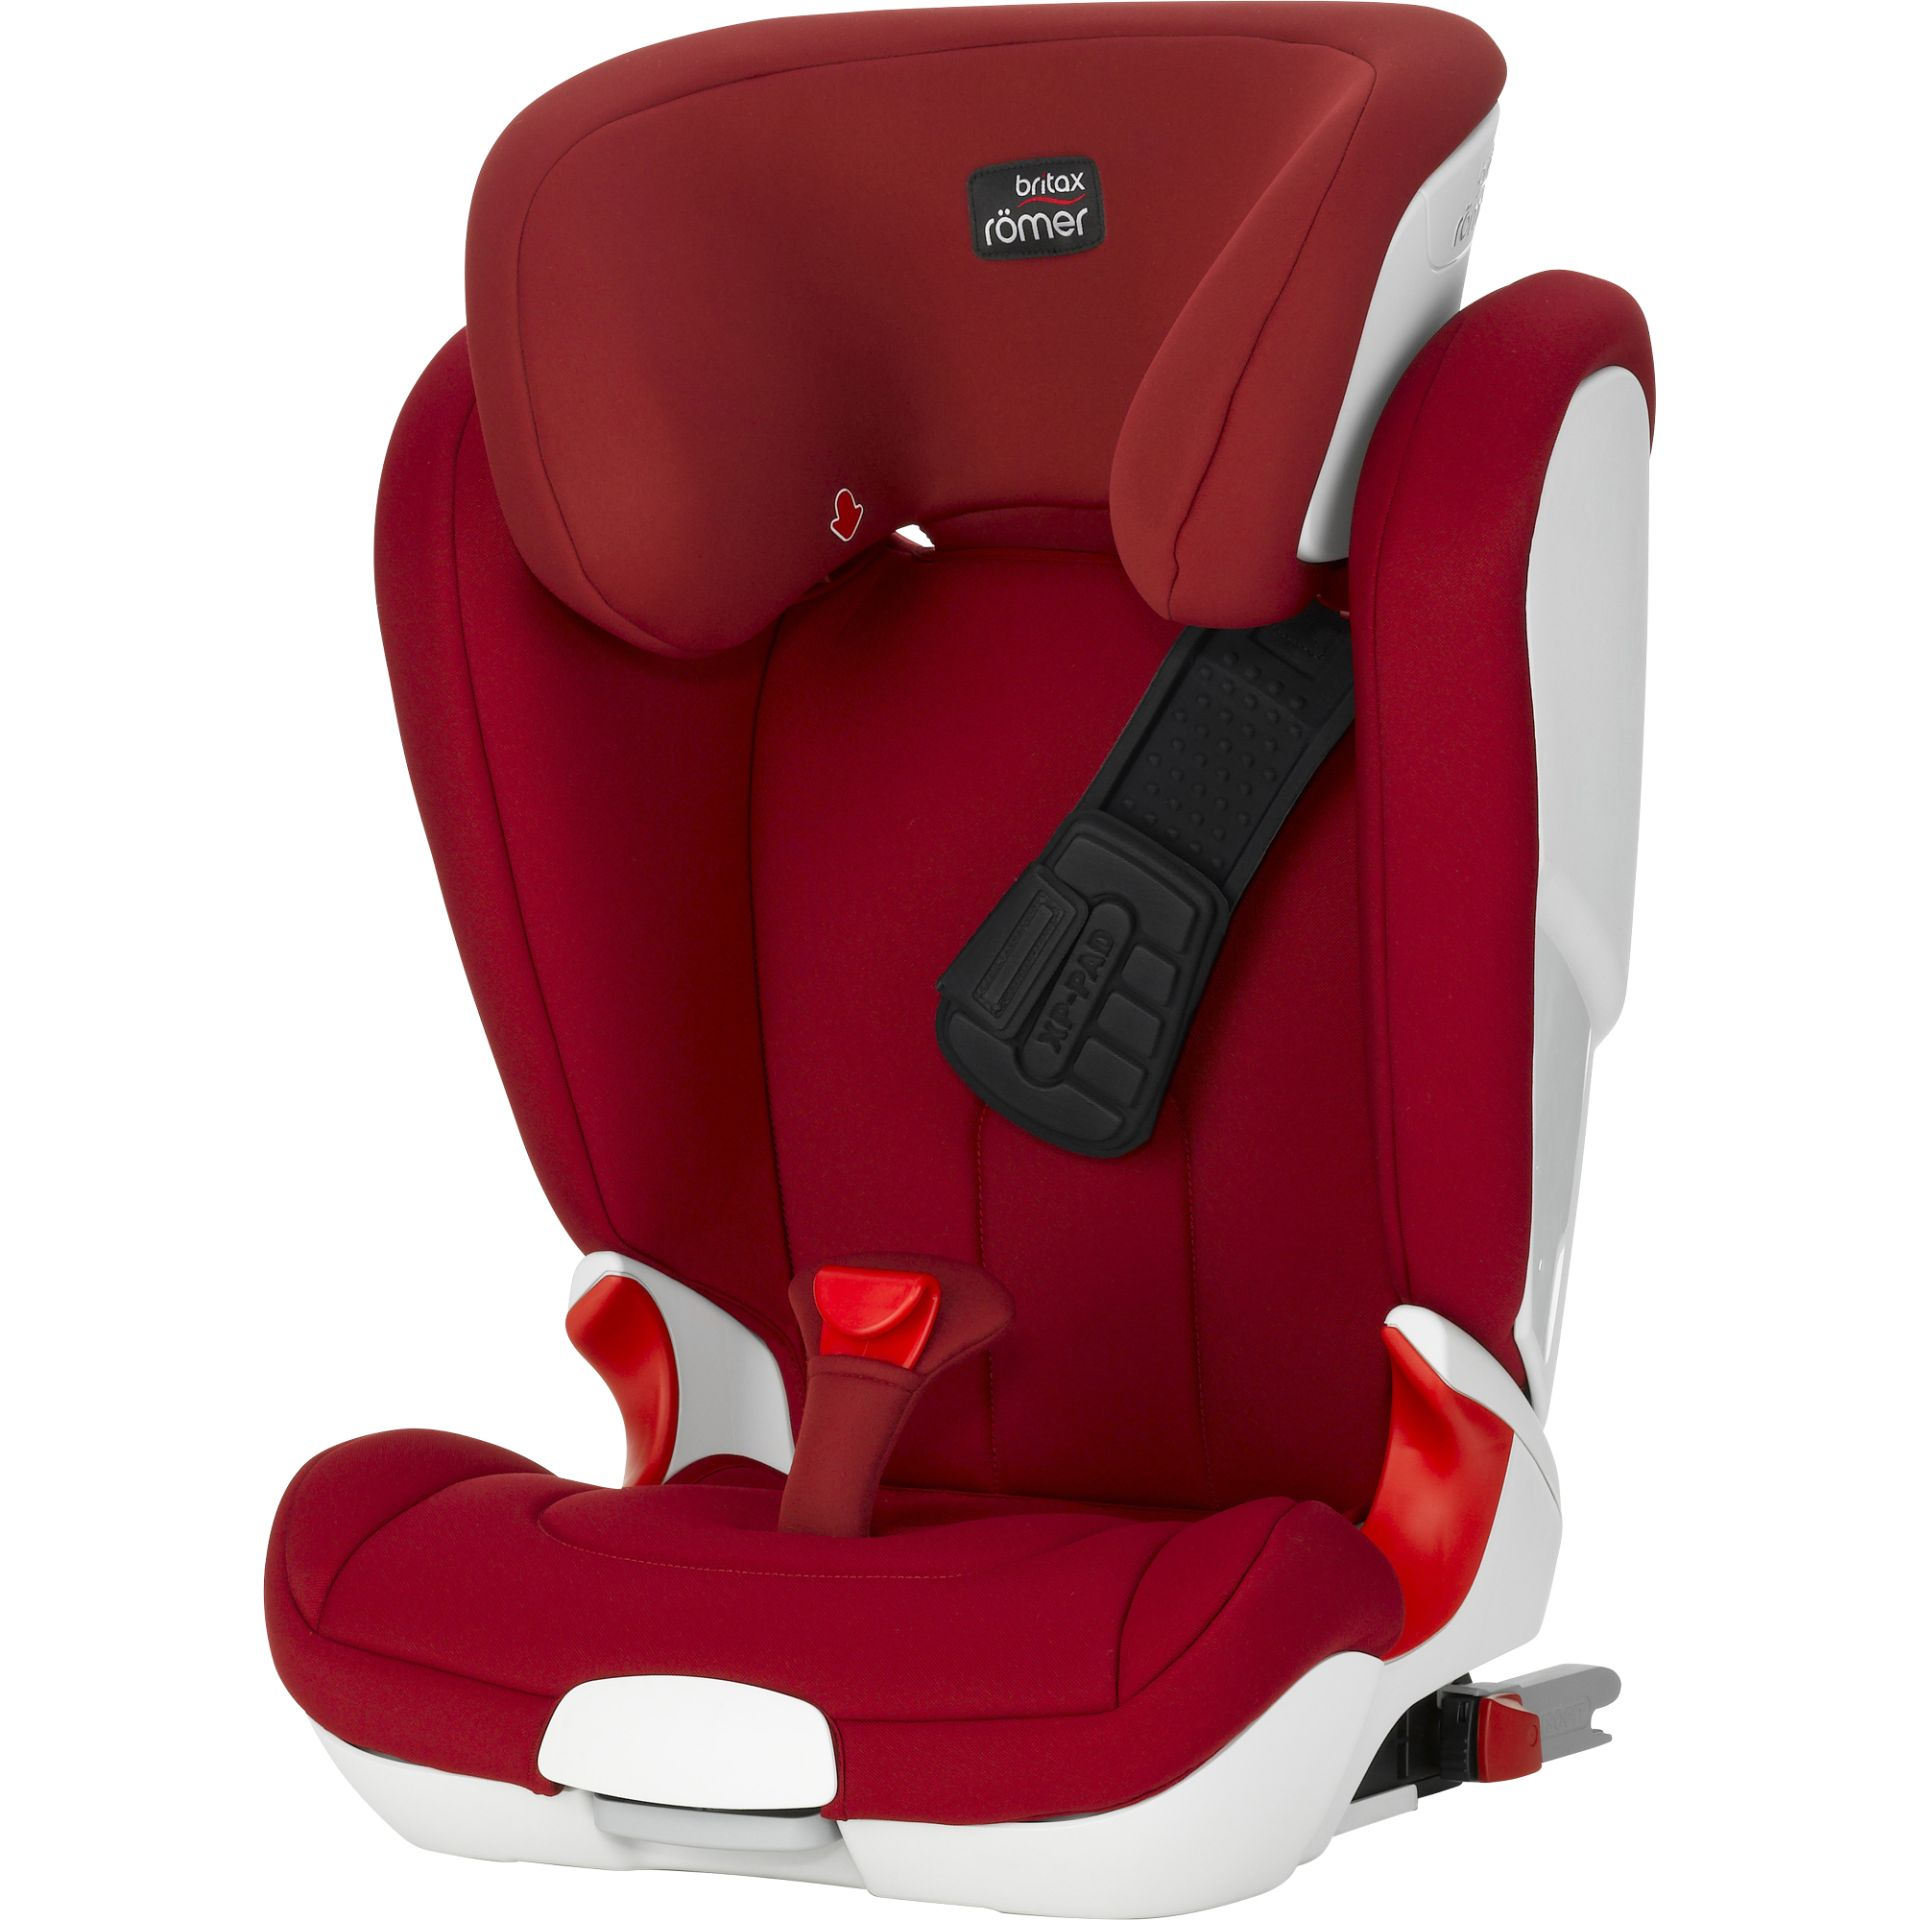 britax r mer child car seat kidfix ii xp 2018 flame red. Black Bedroom Furniture Sets. Home Design Ideas